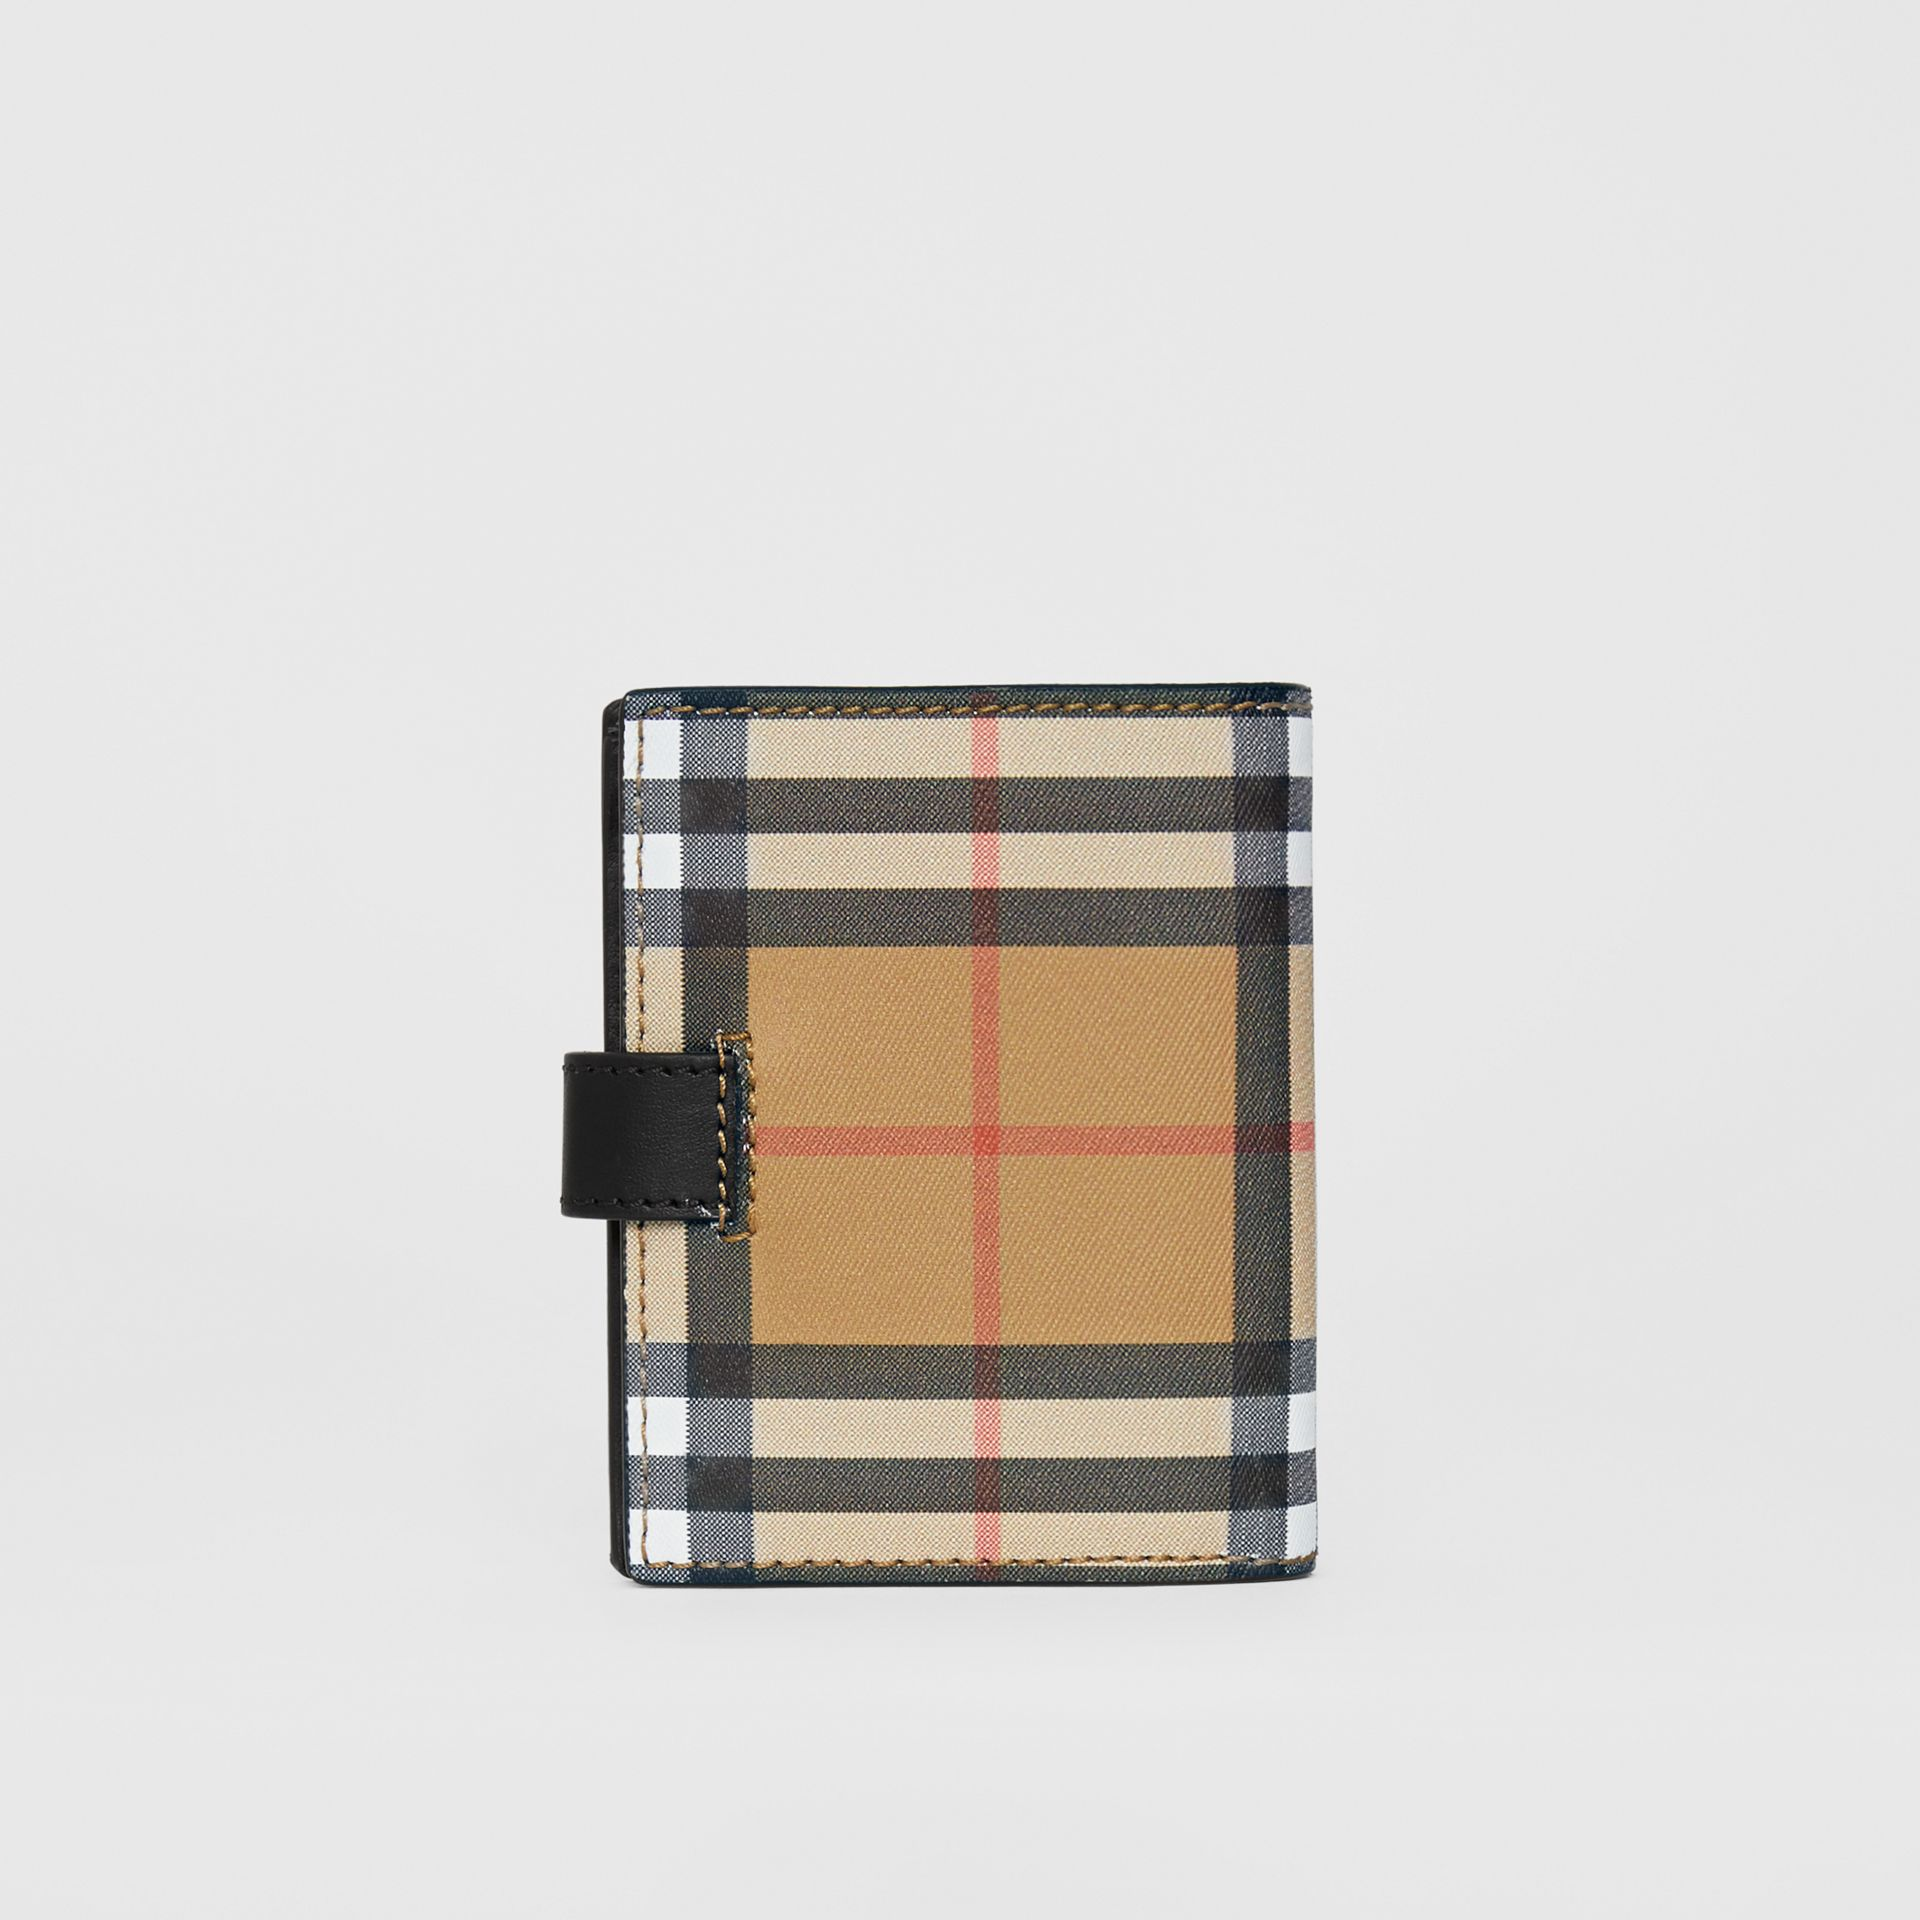 Small Vintage Check and Leather Folding Wallet in Black - Women | Burberry United Kingdom - gallery image 2